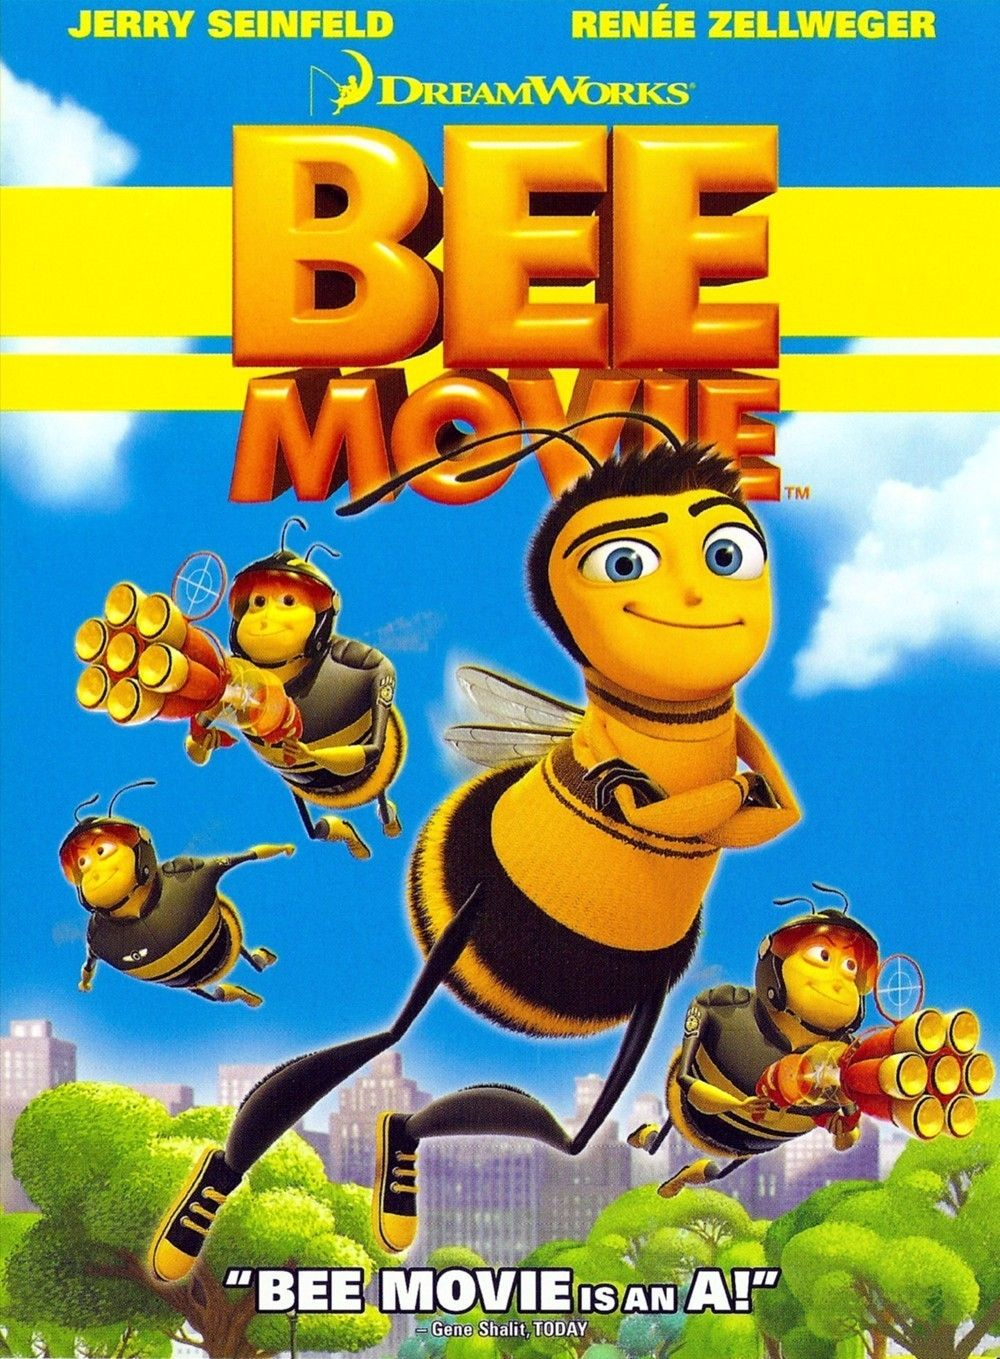 Bee MOvie | Filmes online legendados, Filmes familiares, Os ...